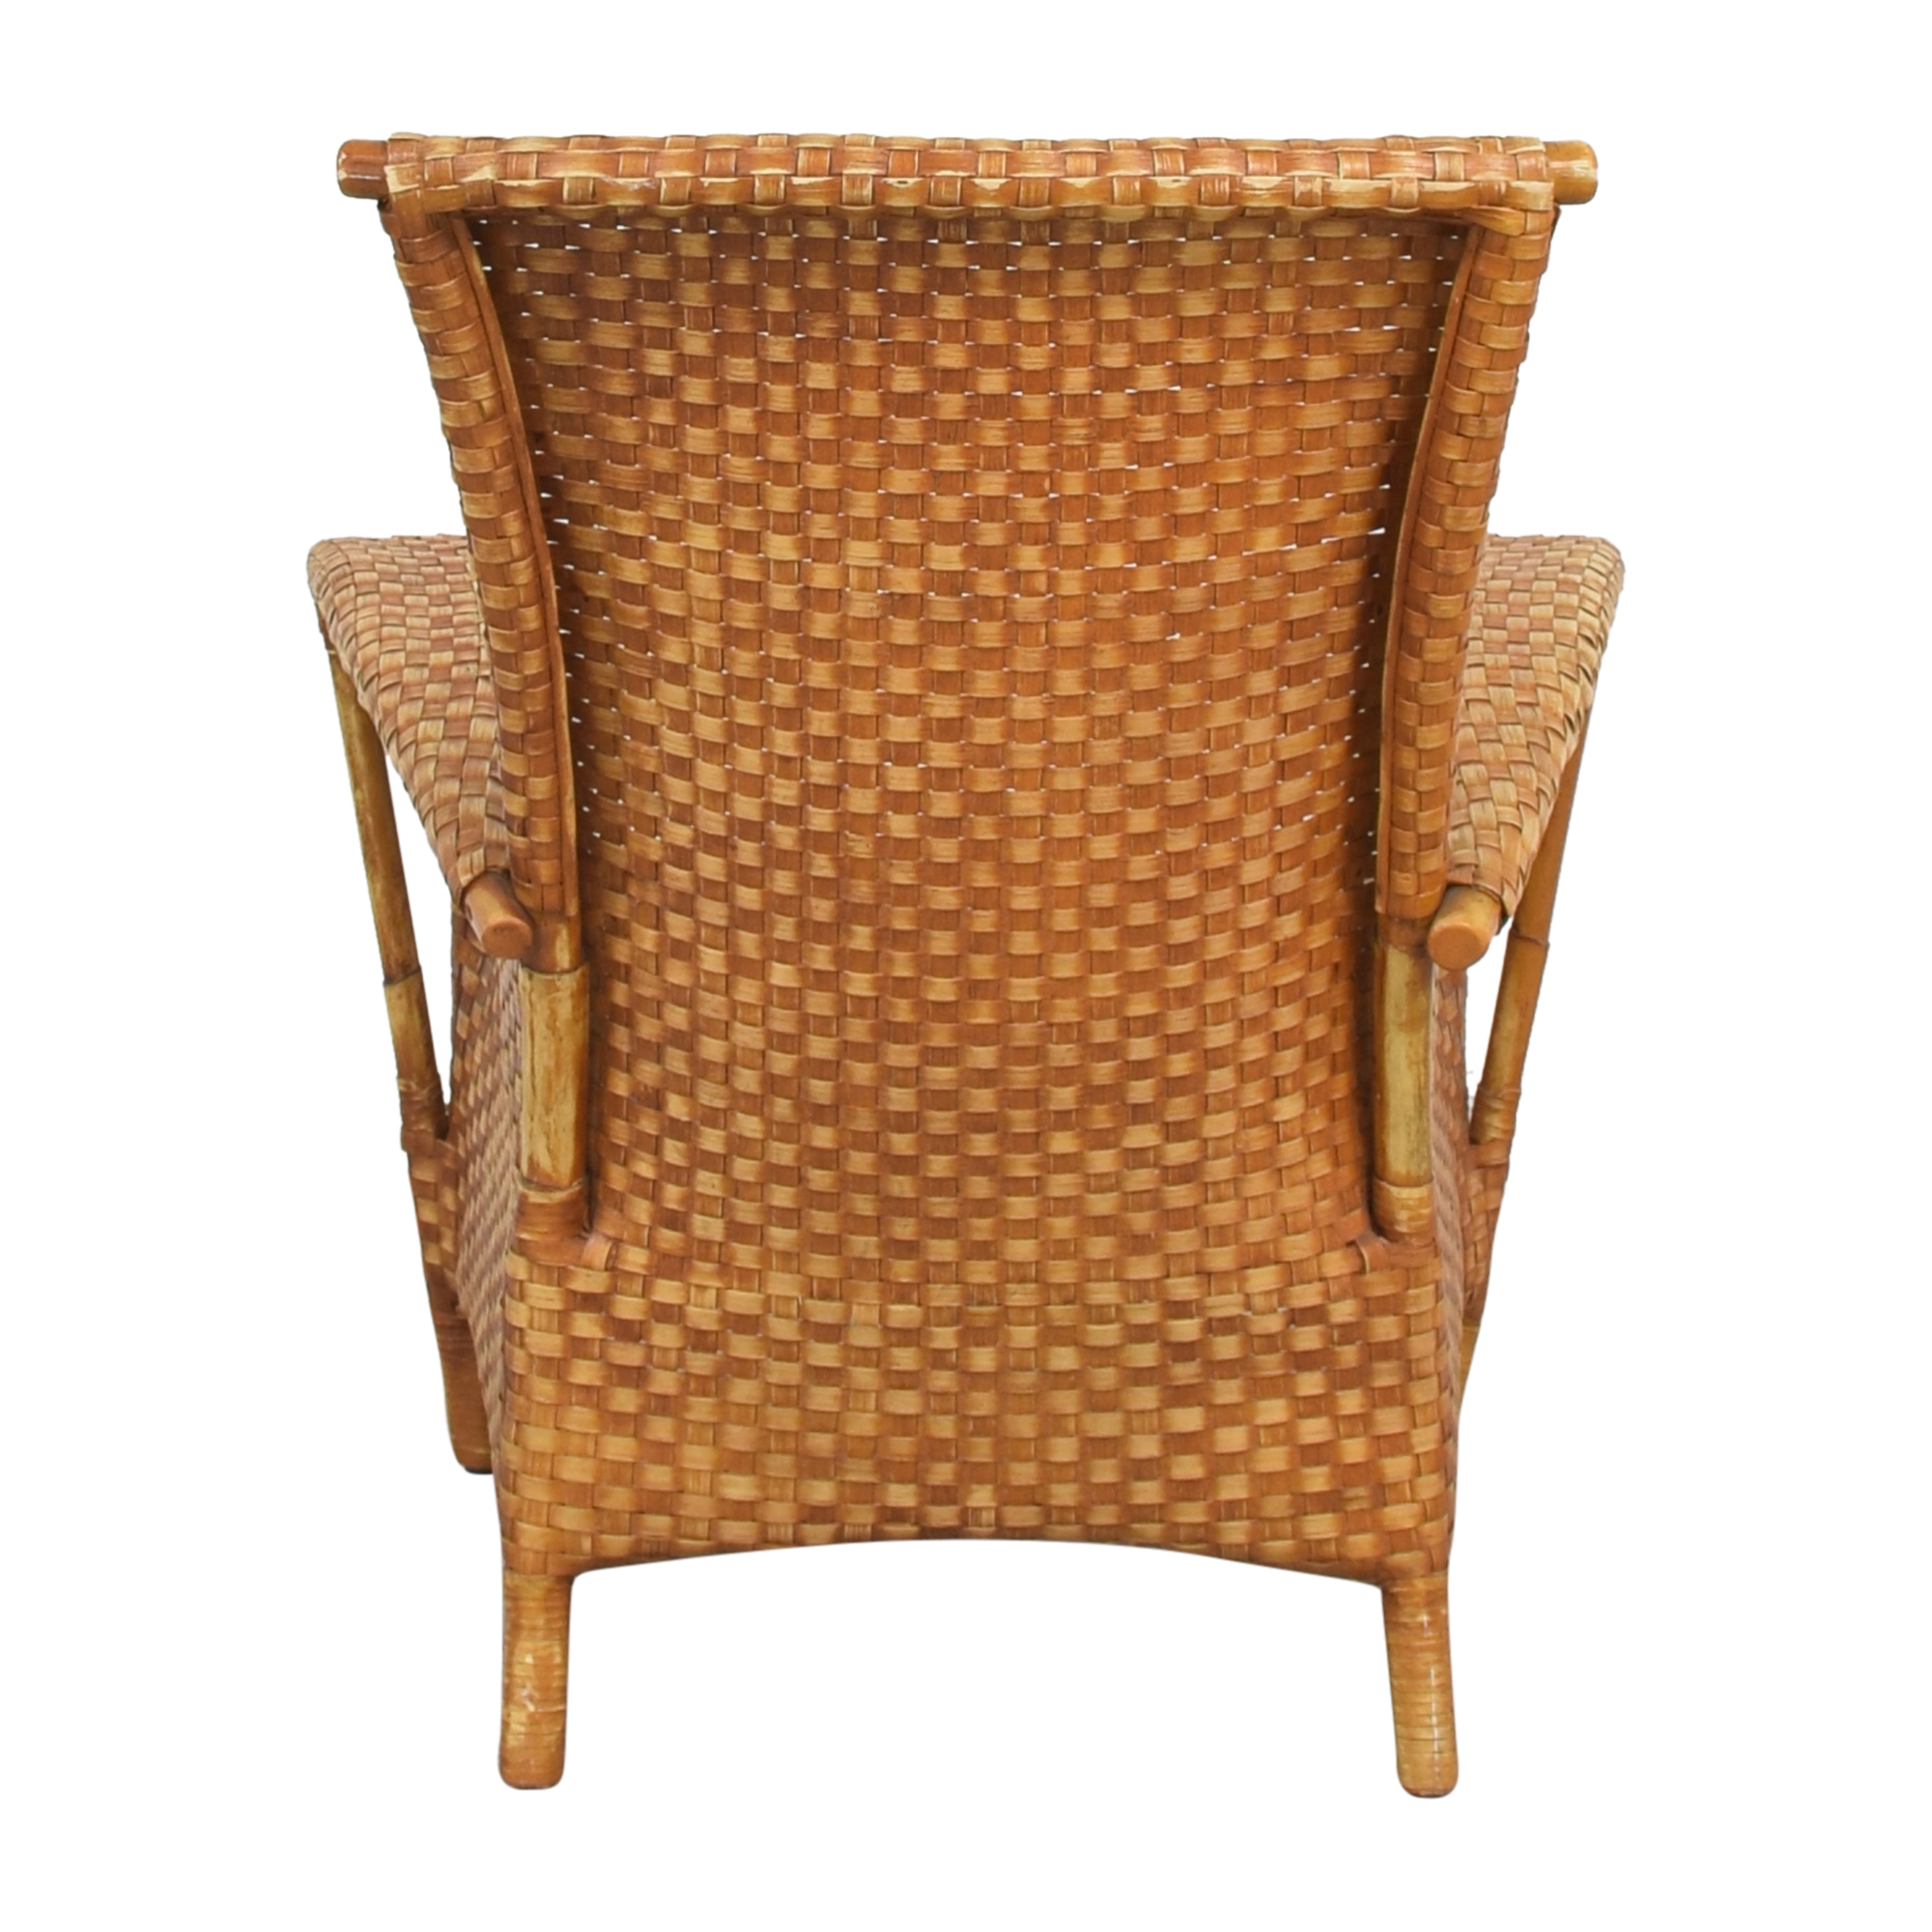 Crate & Barrel Crat & Barrel Wicker Chair ct